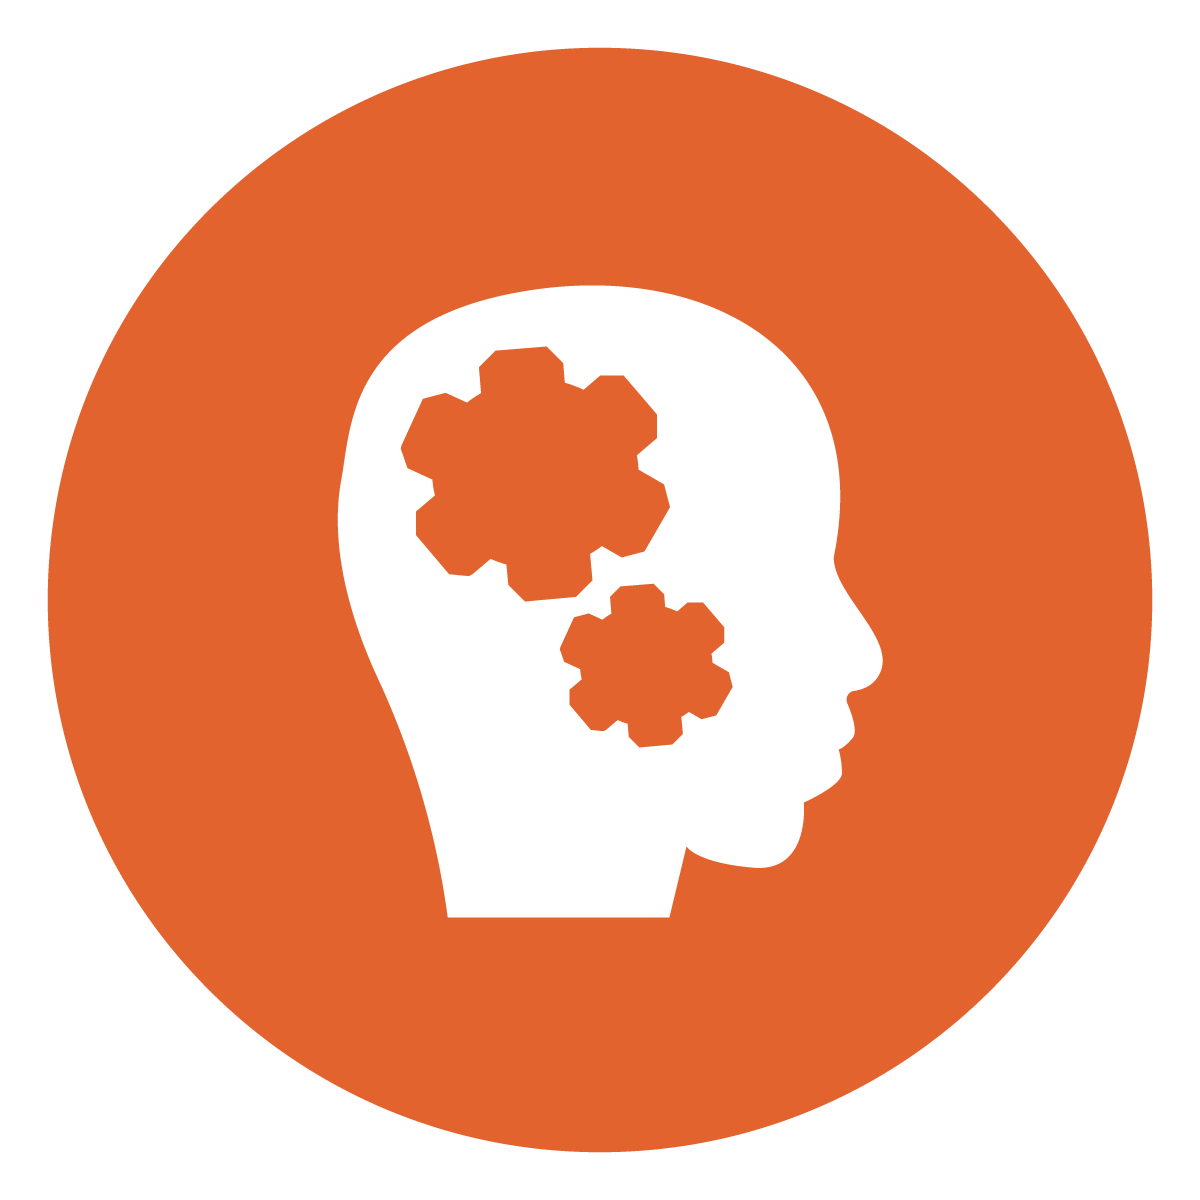 white silhouette profile of head with gears inside a dark orange circle